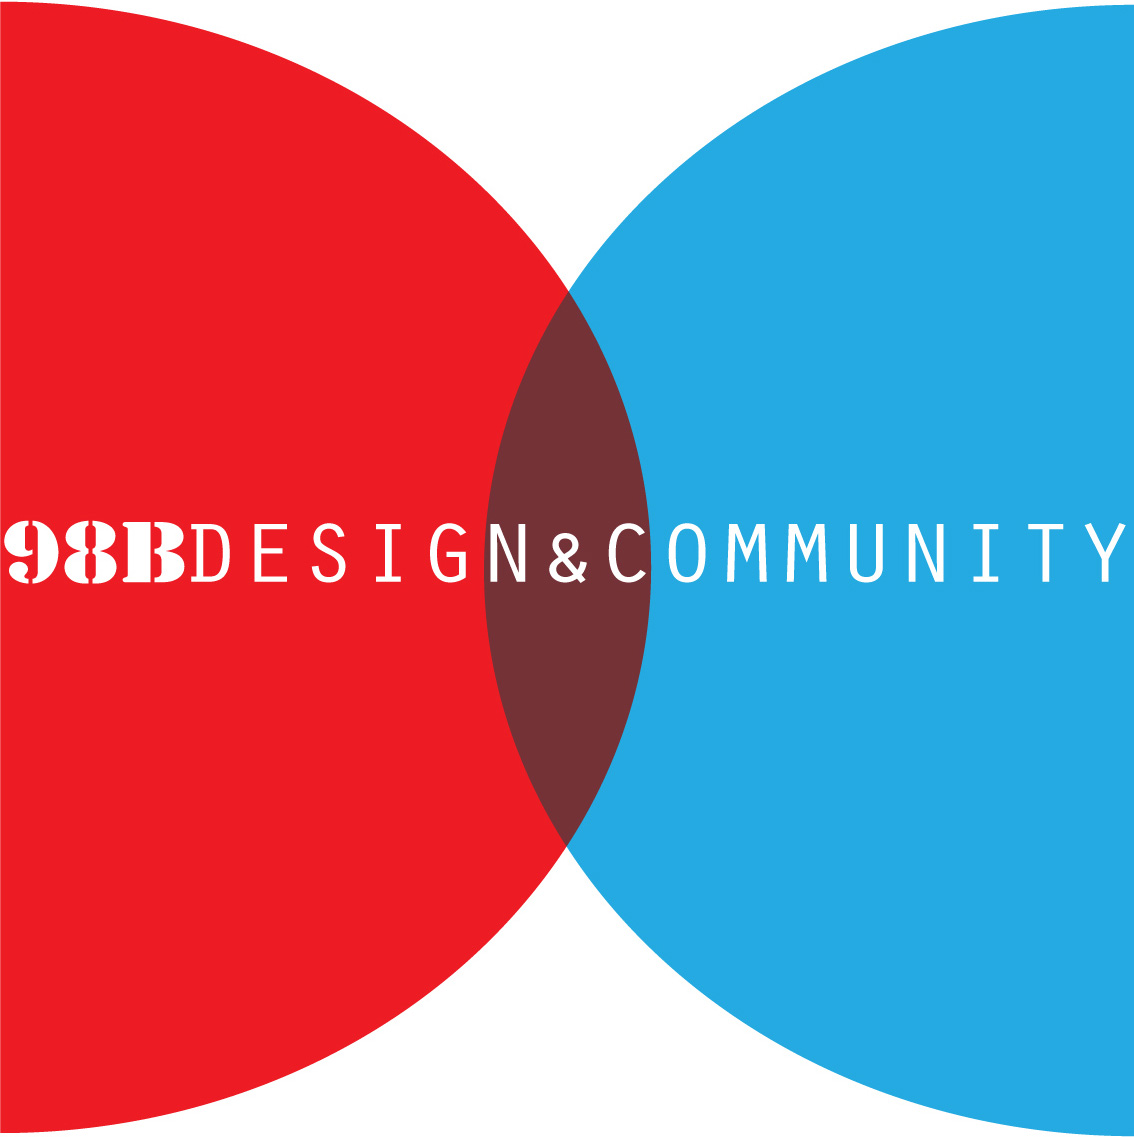 98B Design & Community. The project tries to infuse design into everyday context and its utilitarian purpose for the community around Murphy, Cubao in Quezon City. It is a laboratory and a platform to exchange ideas between artists, designers, architects and the local community.